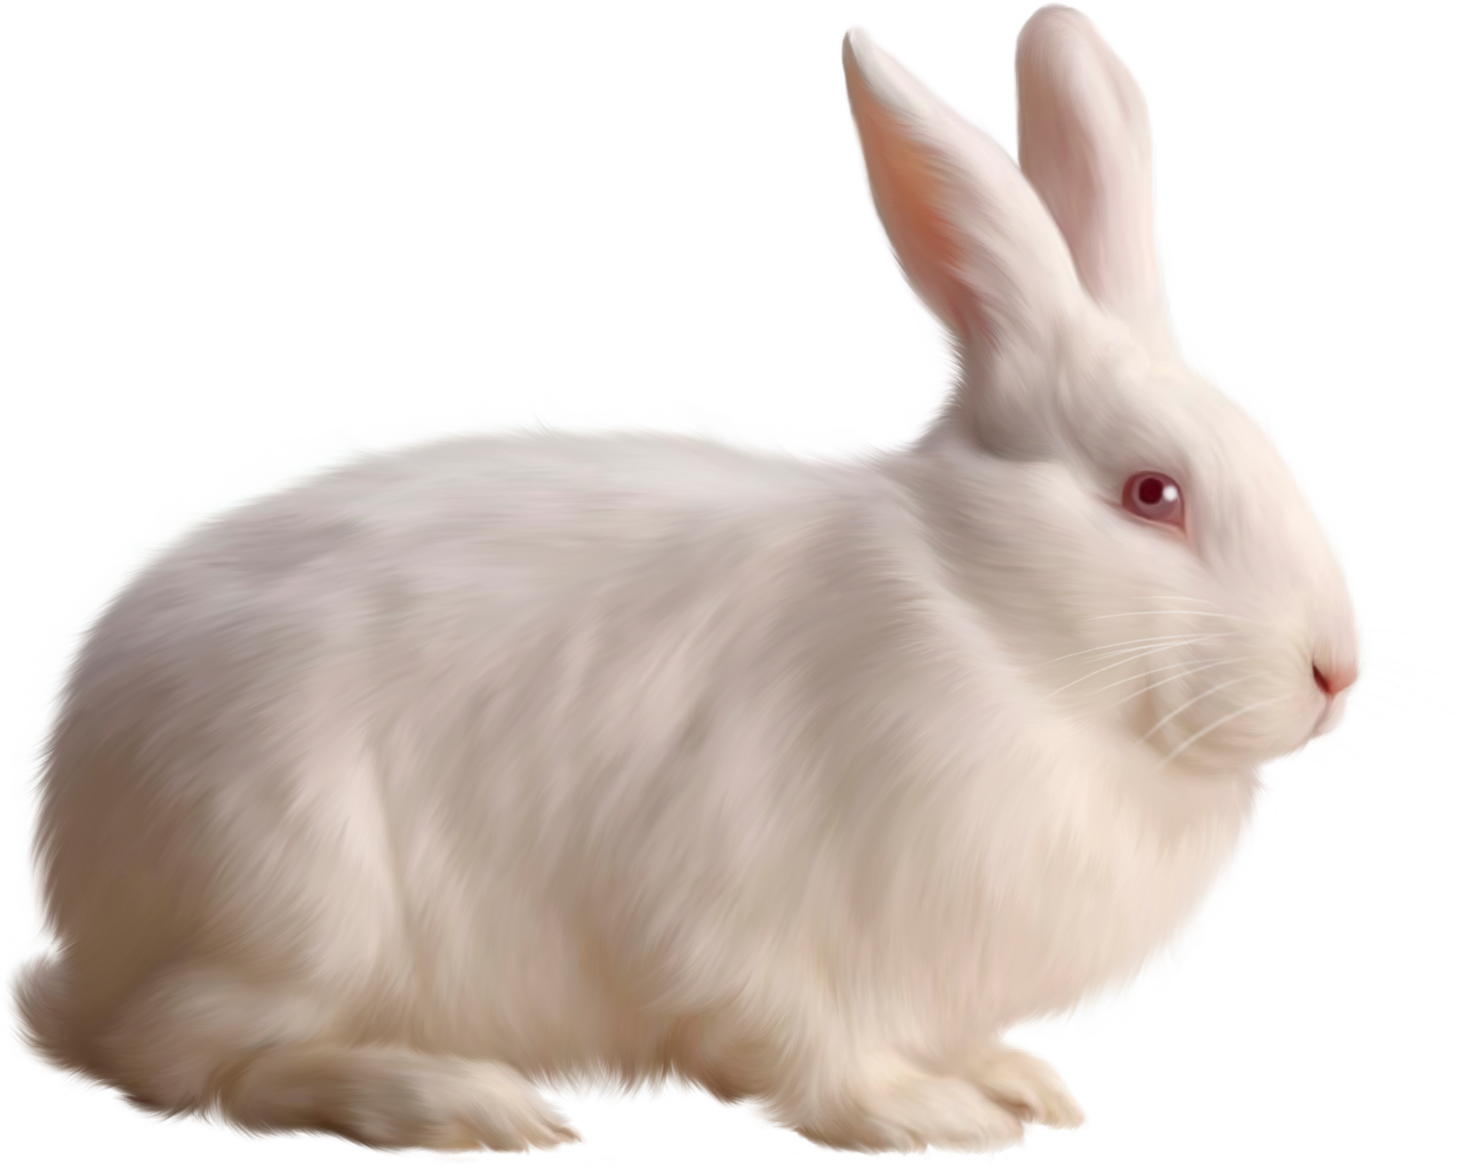 White Rabbit Png - Download Transparent White Bunny Rabbit HQ PNG Image | FreePNGImg